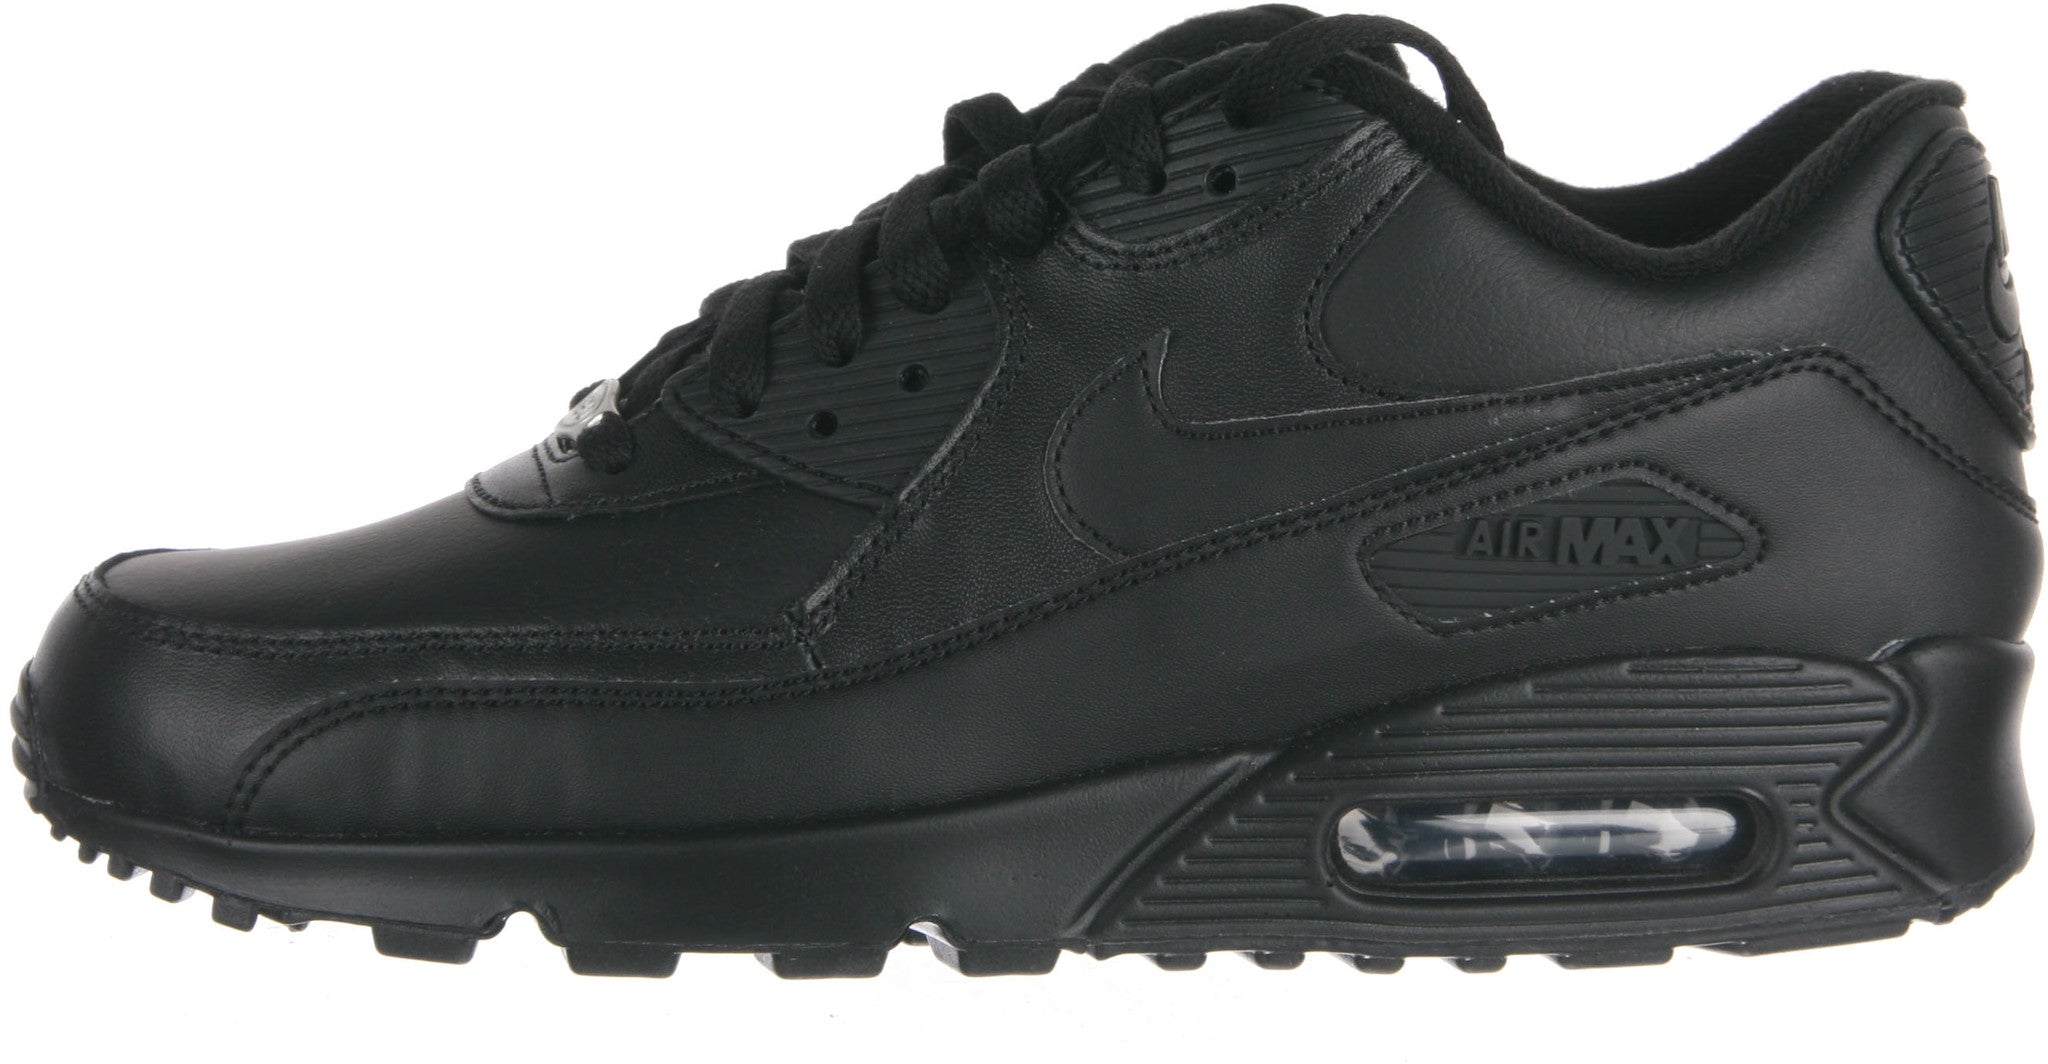 more photos bcab2 93cc4 Nike Air max  90 leather men s sneakers black (302519-001). Tap to expand